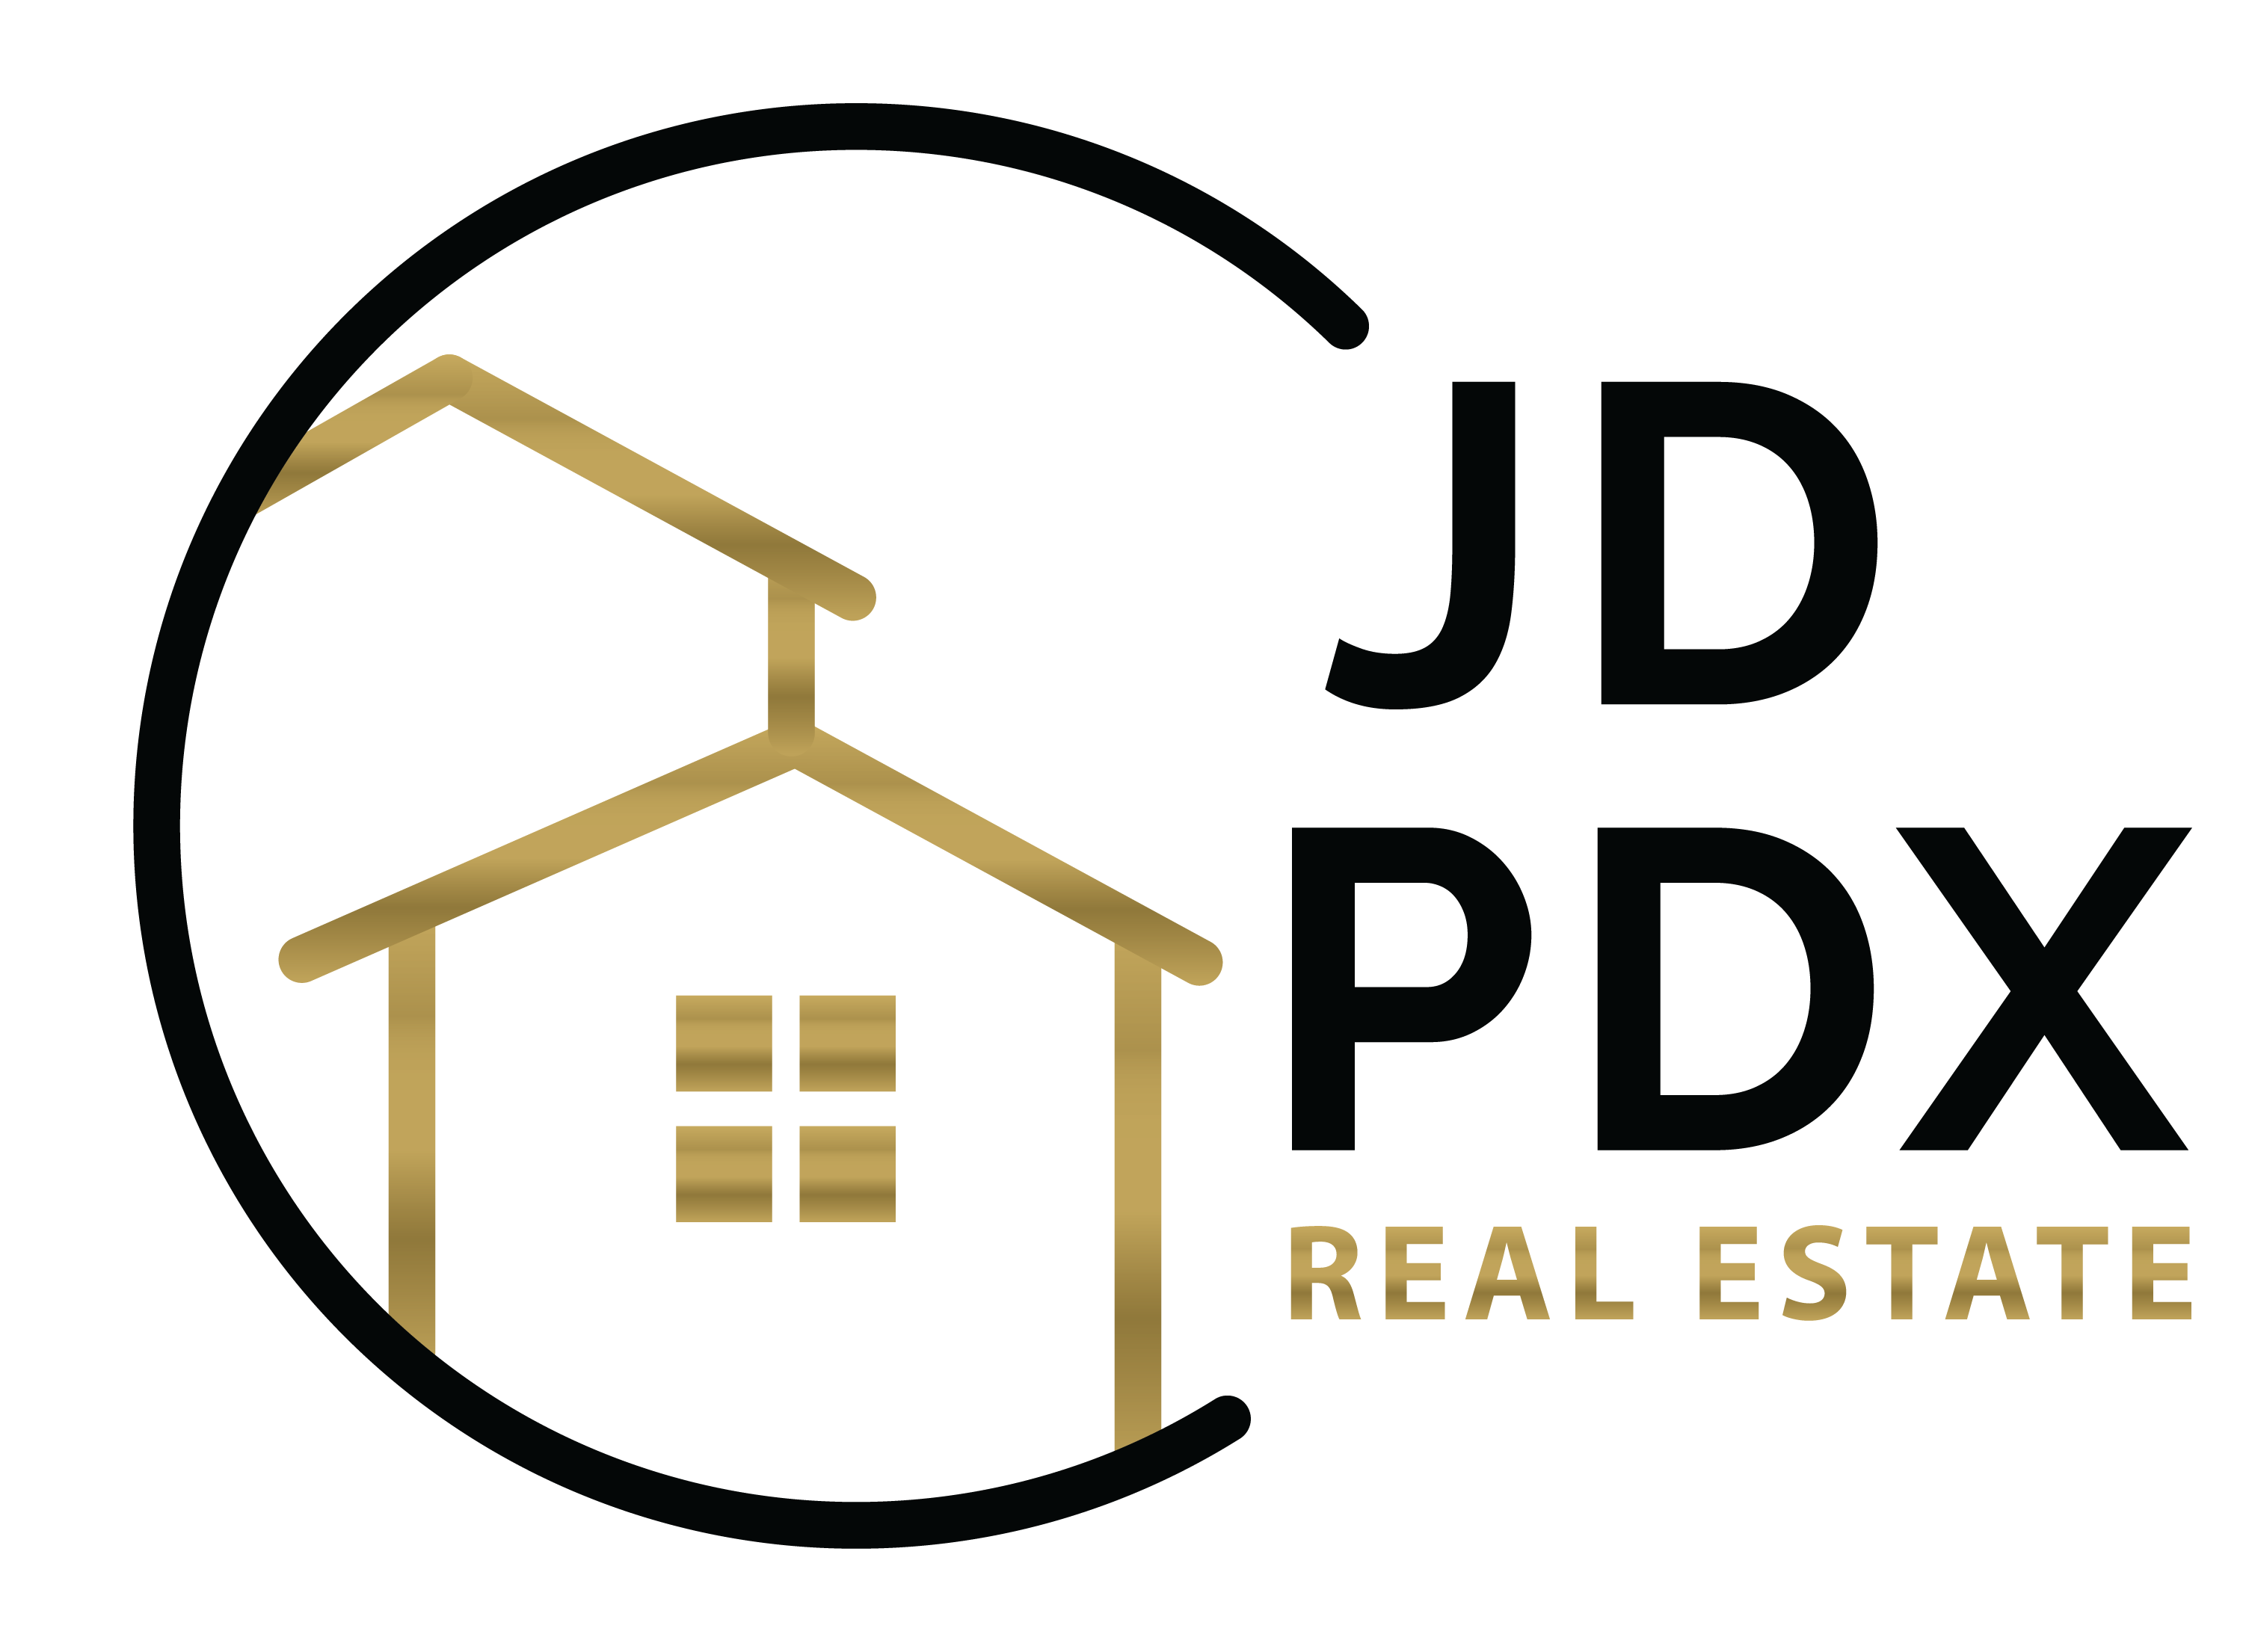 jd pdx real estate specializing in helping first time home buyers jdpdxrealestate com